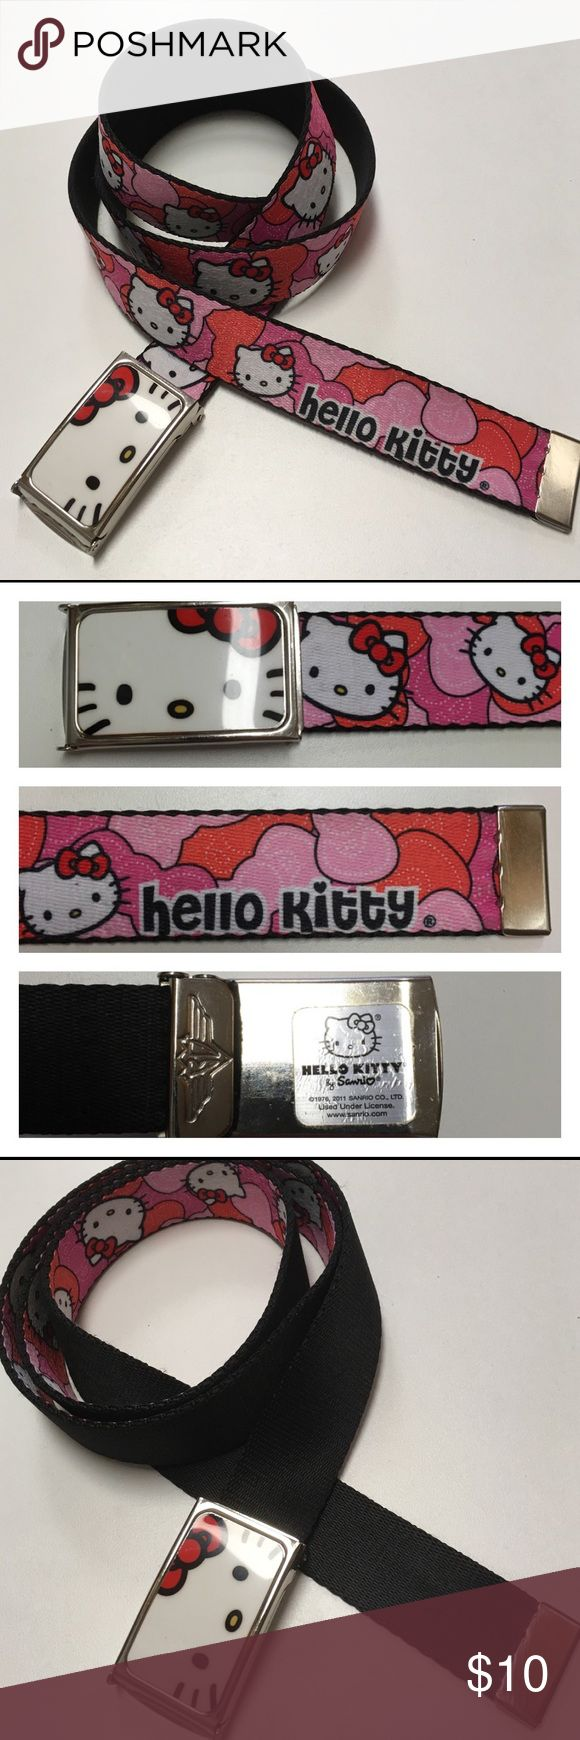 """Hello Kitty Web Belt Reversible & Adjustable Great belt. Bright colors. Good condition. Has a few scratches on the metal end. See picture. Can be worn on Print side or black side. 1.25"""" wide. 46"""" inches long. Could be shorter. Depends how much you would like hanging. Hello Kitty Accessories Belts"""